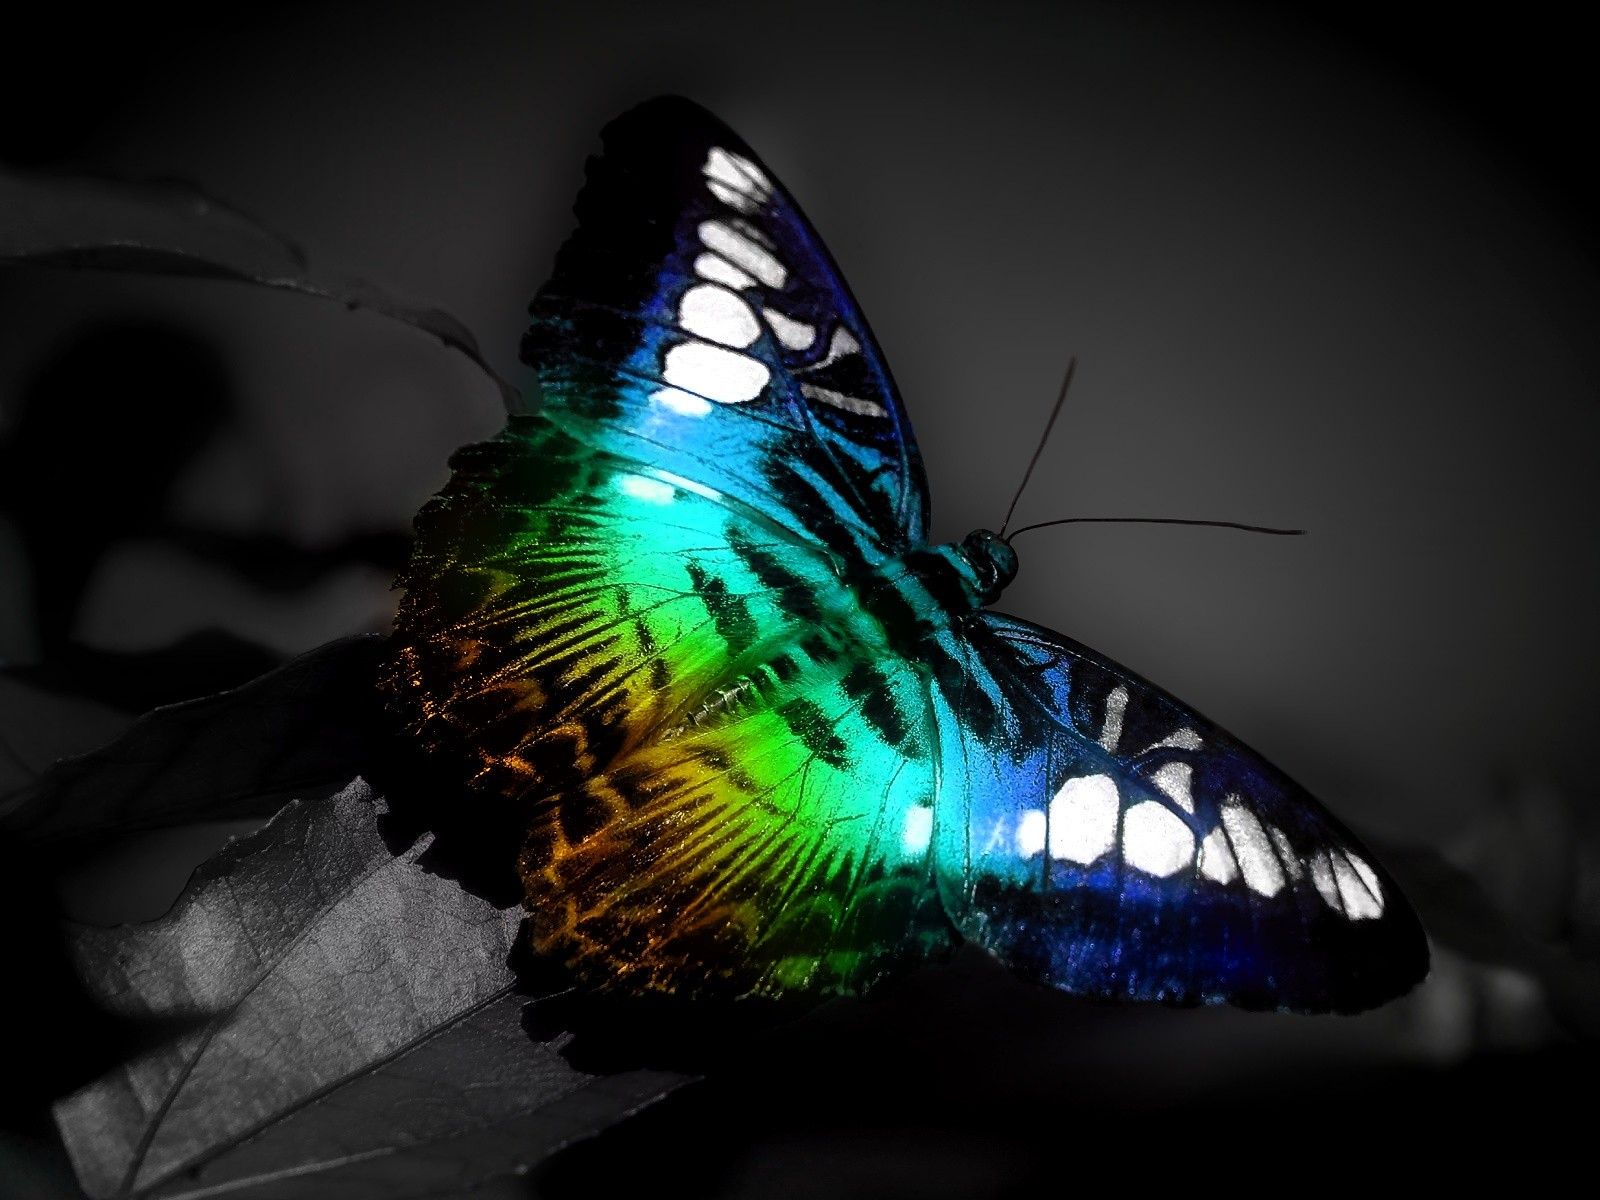 New Best Butterfly Wallpapers, Wallpapers Butterfly, Butterfly Wallpapers